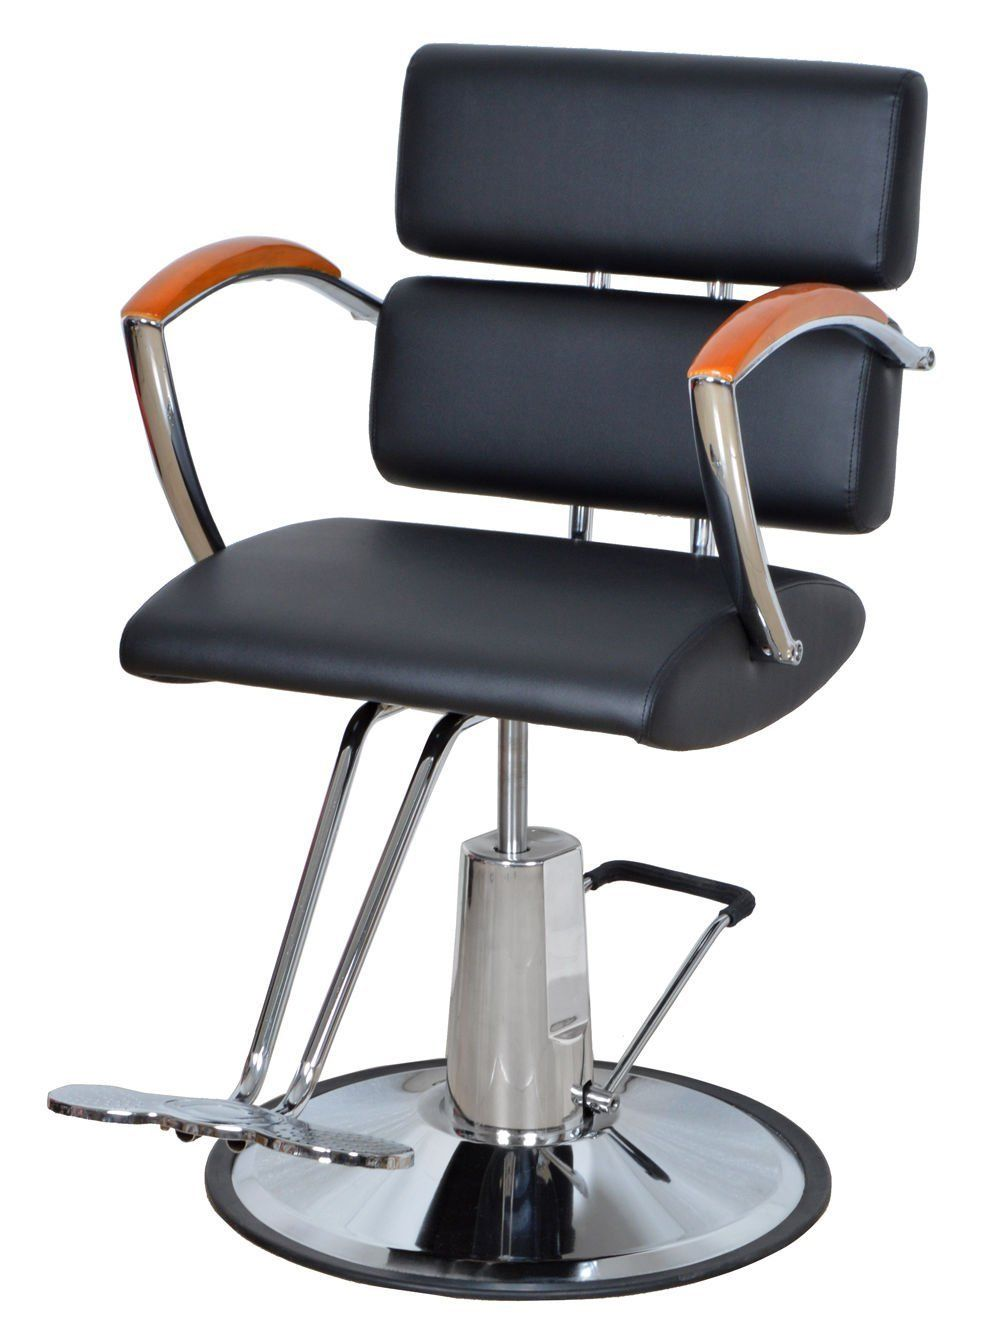 Beauty salon spa hydraulic barber chair black steel for Hydraulic chairs beauty salon